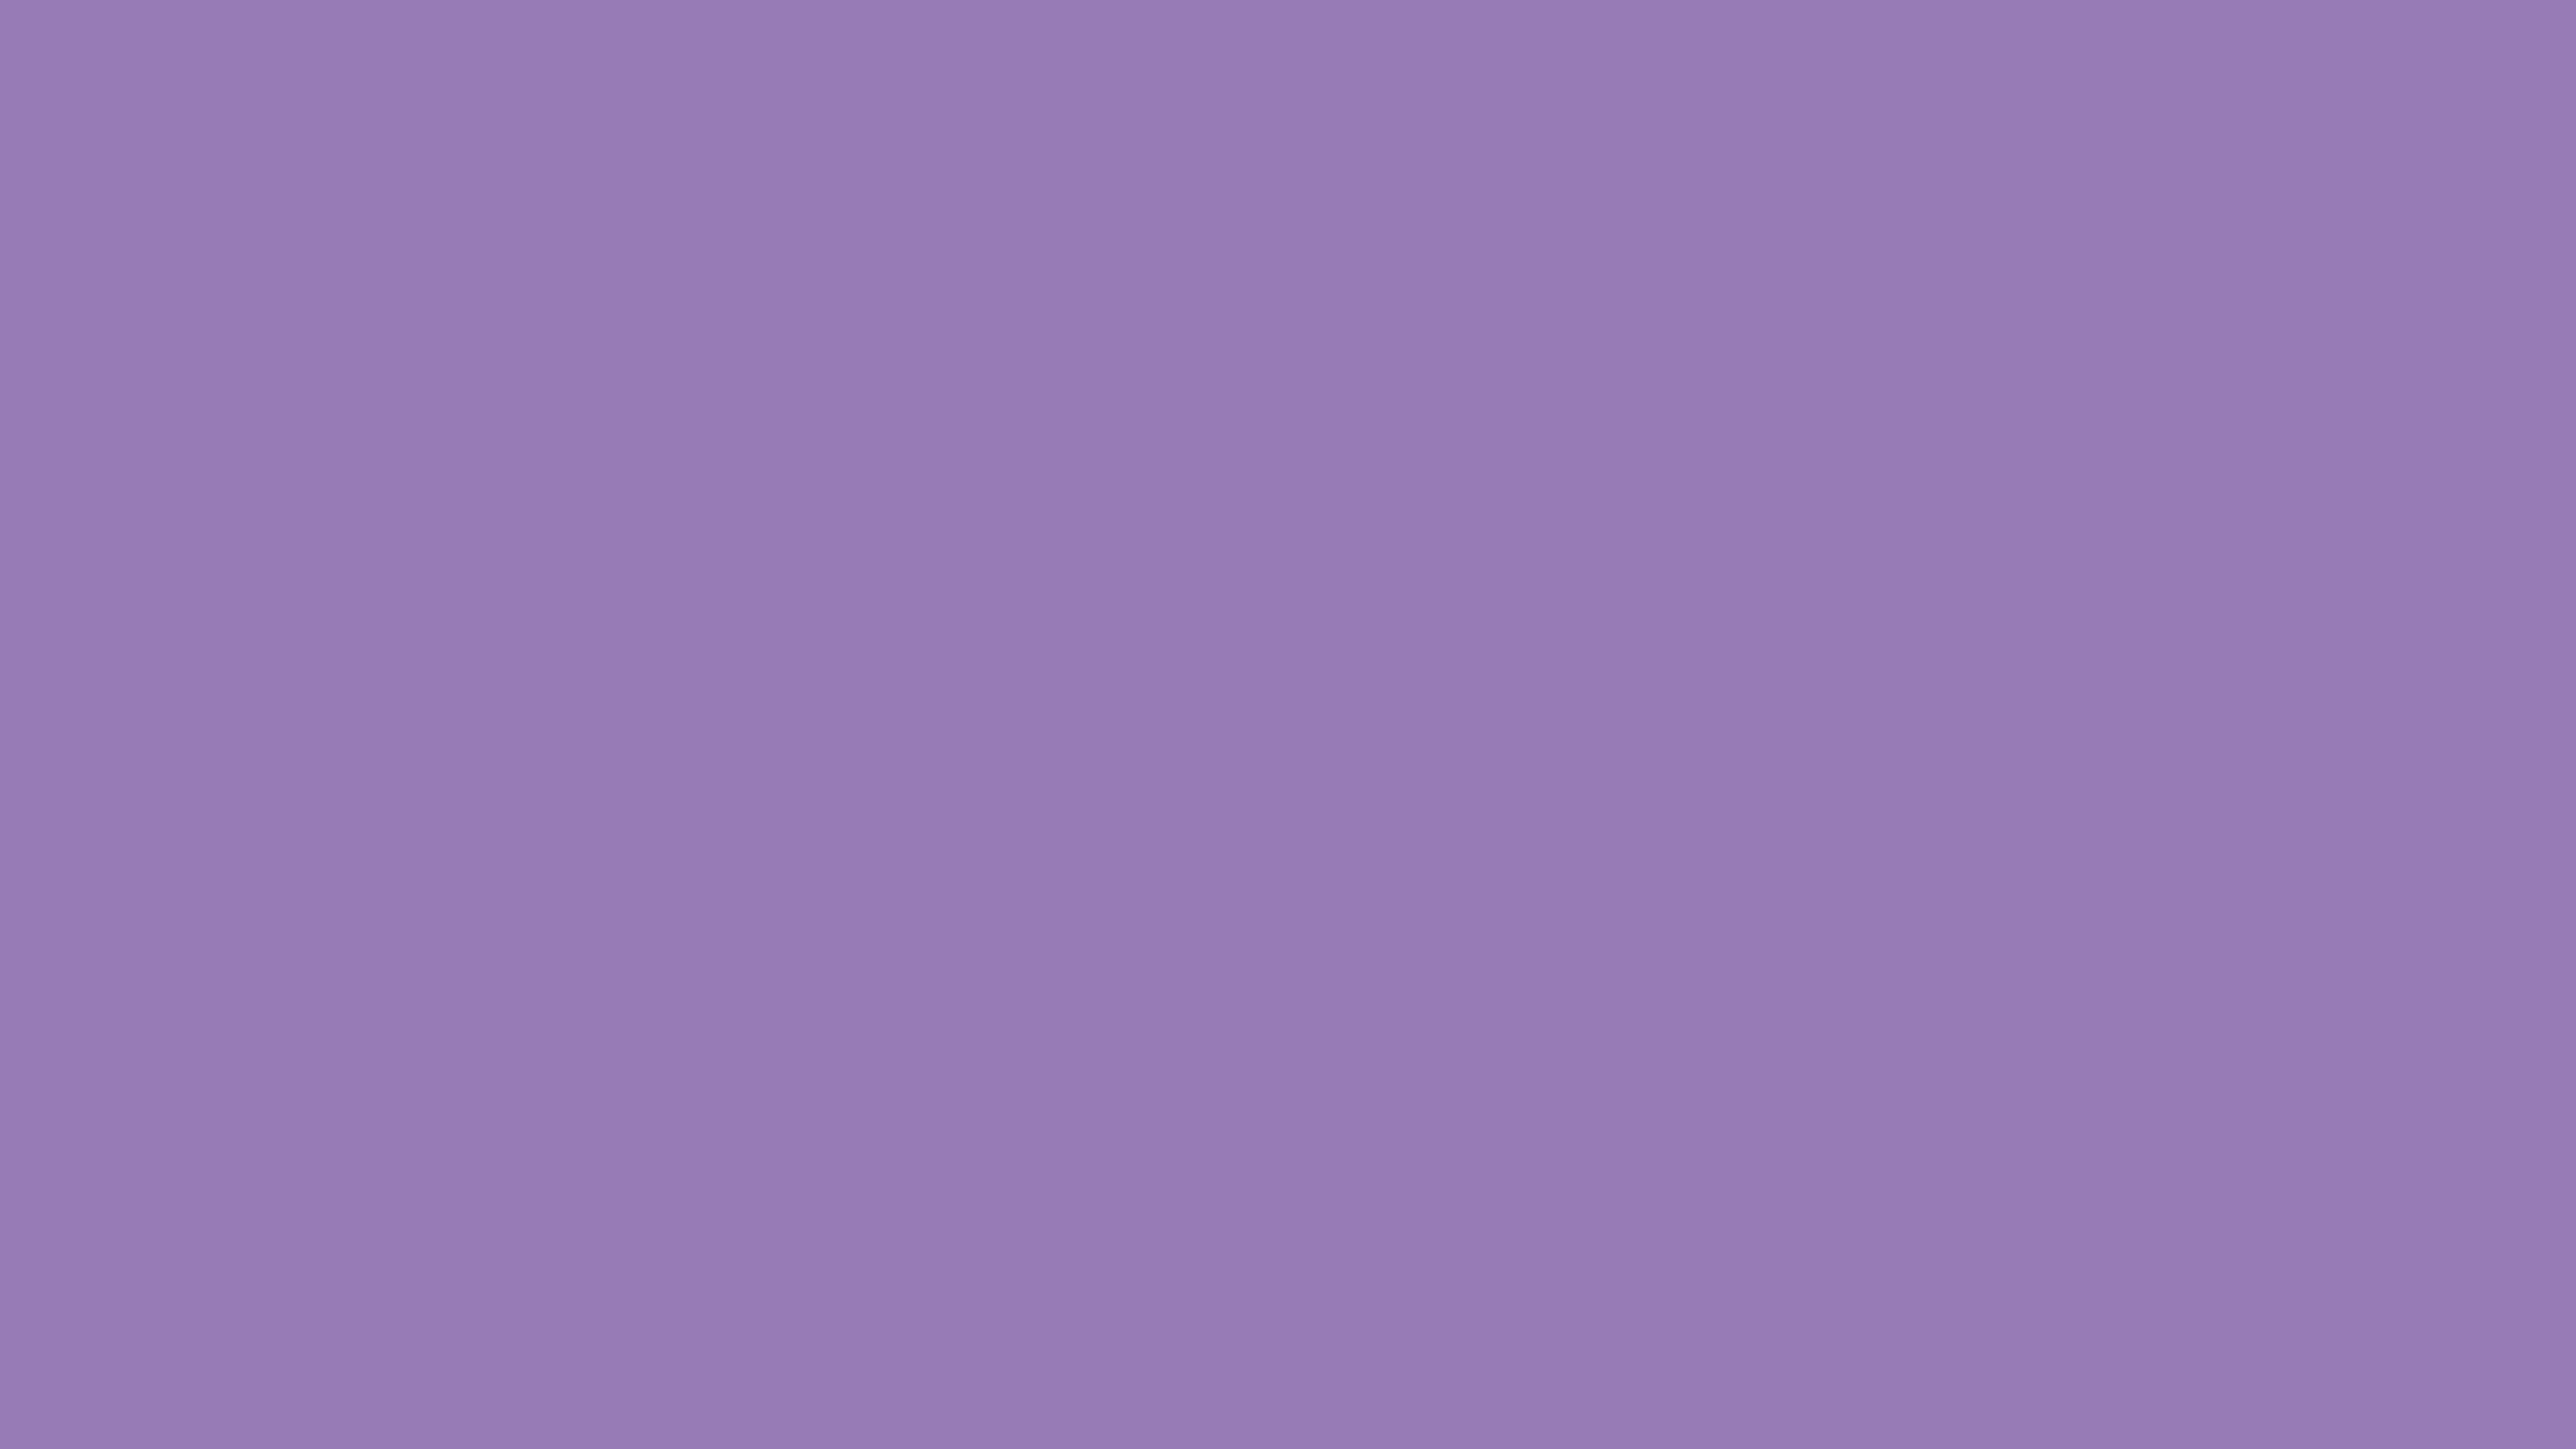 4096x2304 Lavender Purple Solid Color Background